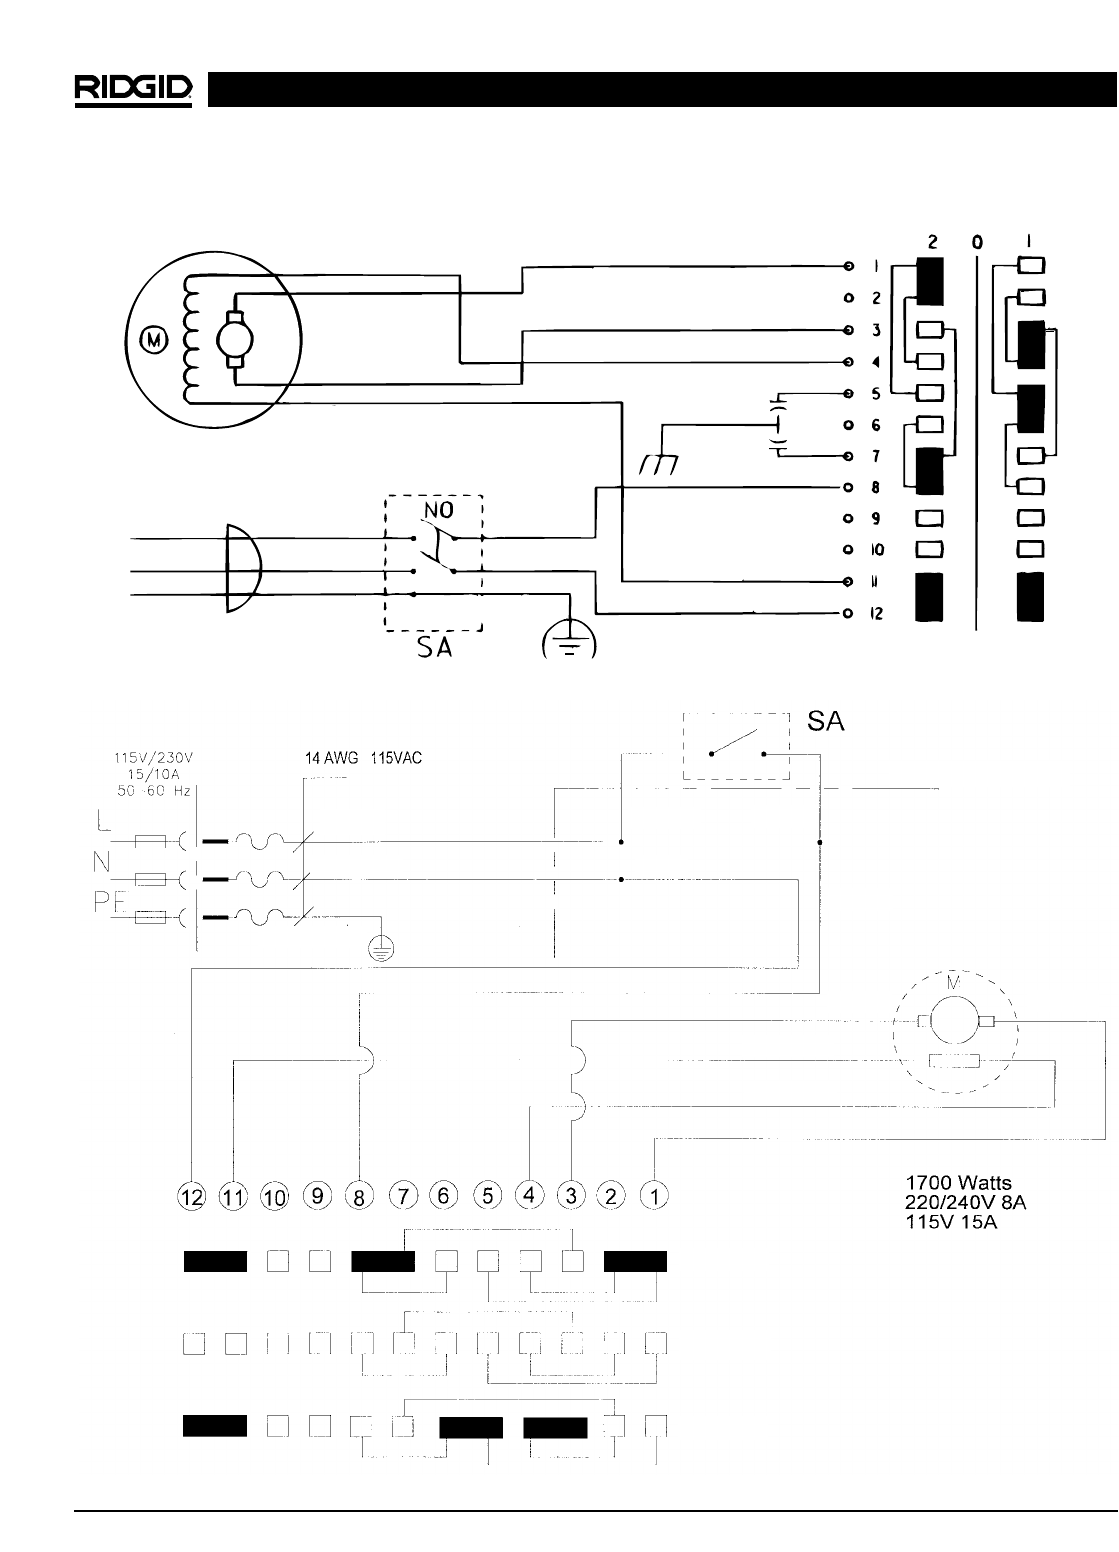 68b109bc 3c1f 445d 9958 08de9edaa37c bg14 page 20 of ridgid sewing machine 300 user guide manualsonline com singer sewing machine wiring diagram at suagrazia.org